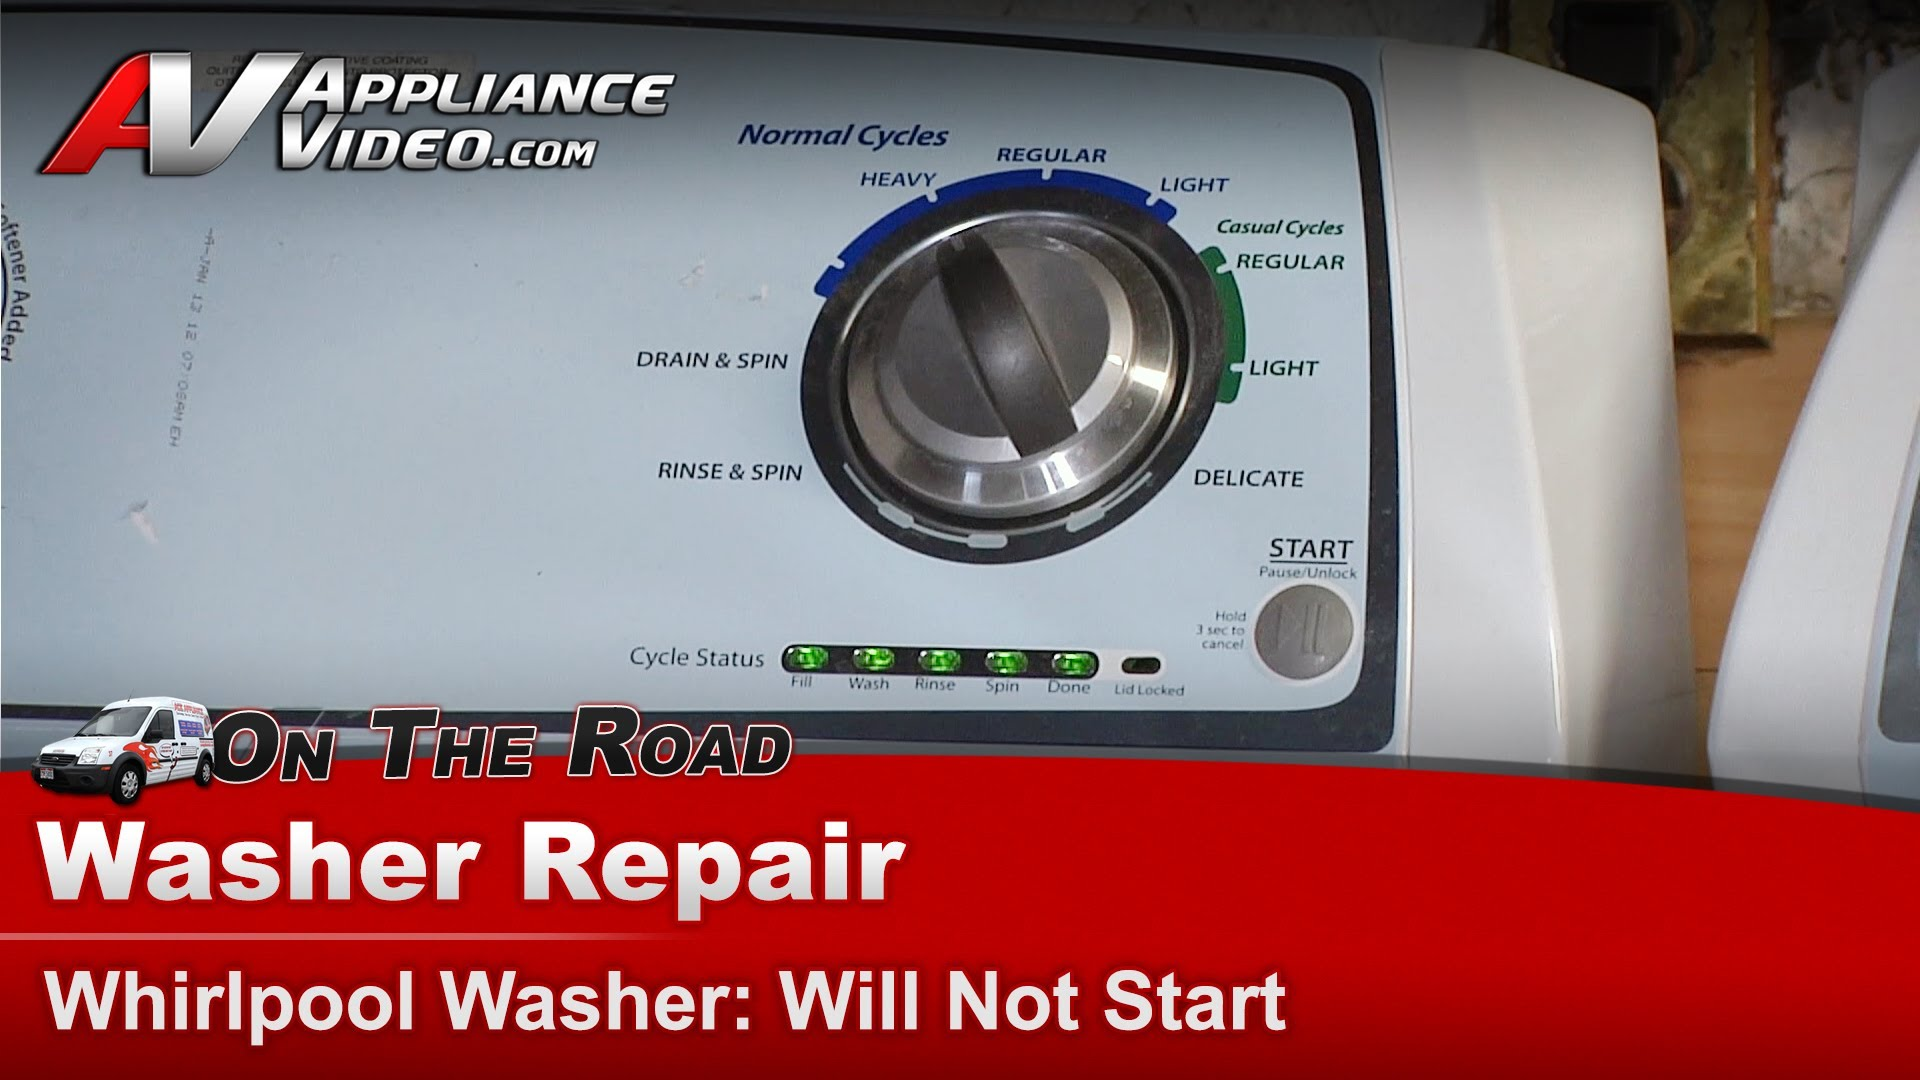 electric dryer wiring diagram 2000 vw beetle fuse whirlpool wtw4800xq2 washer repair – does not start | appliance video